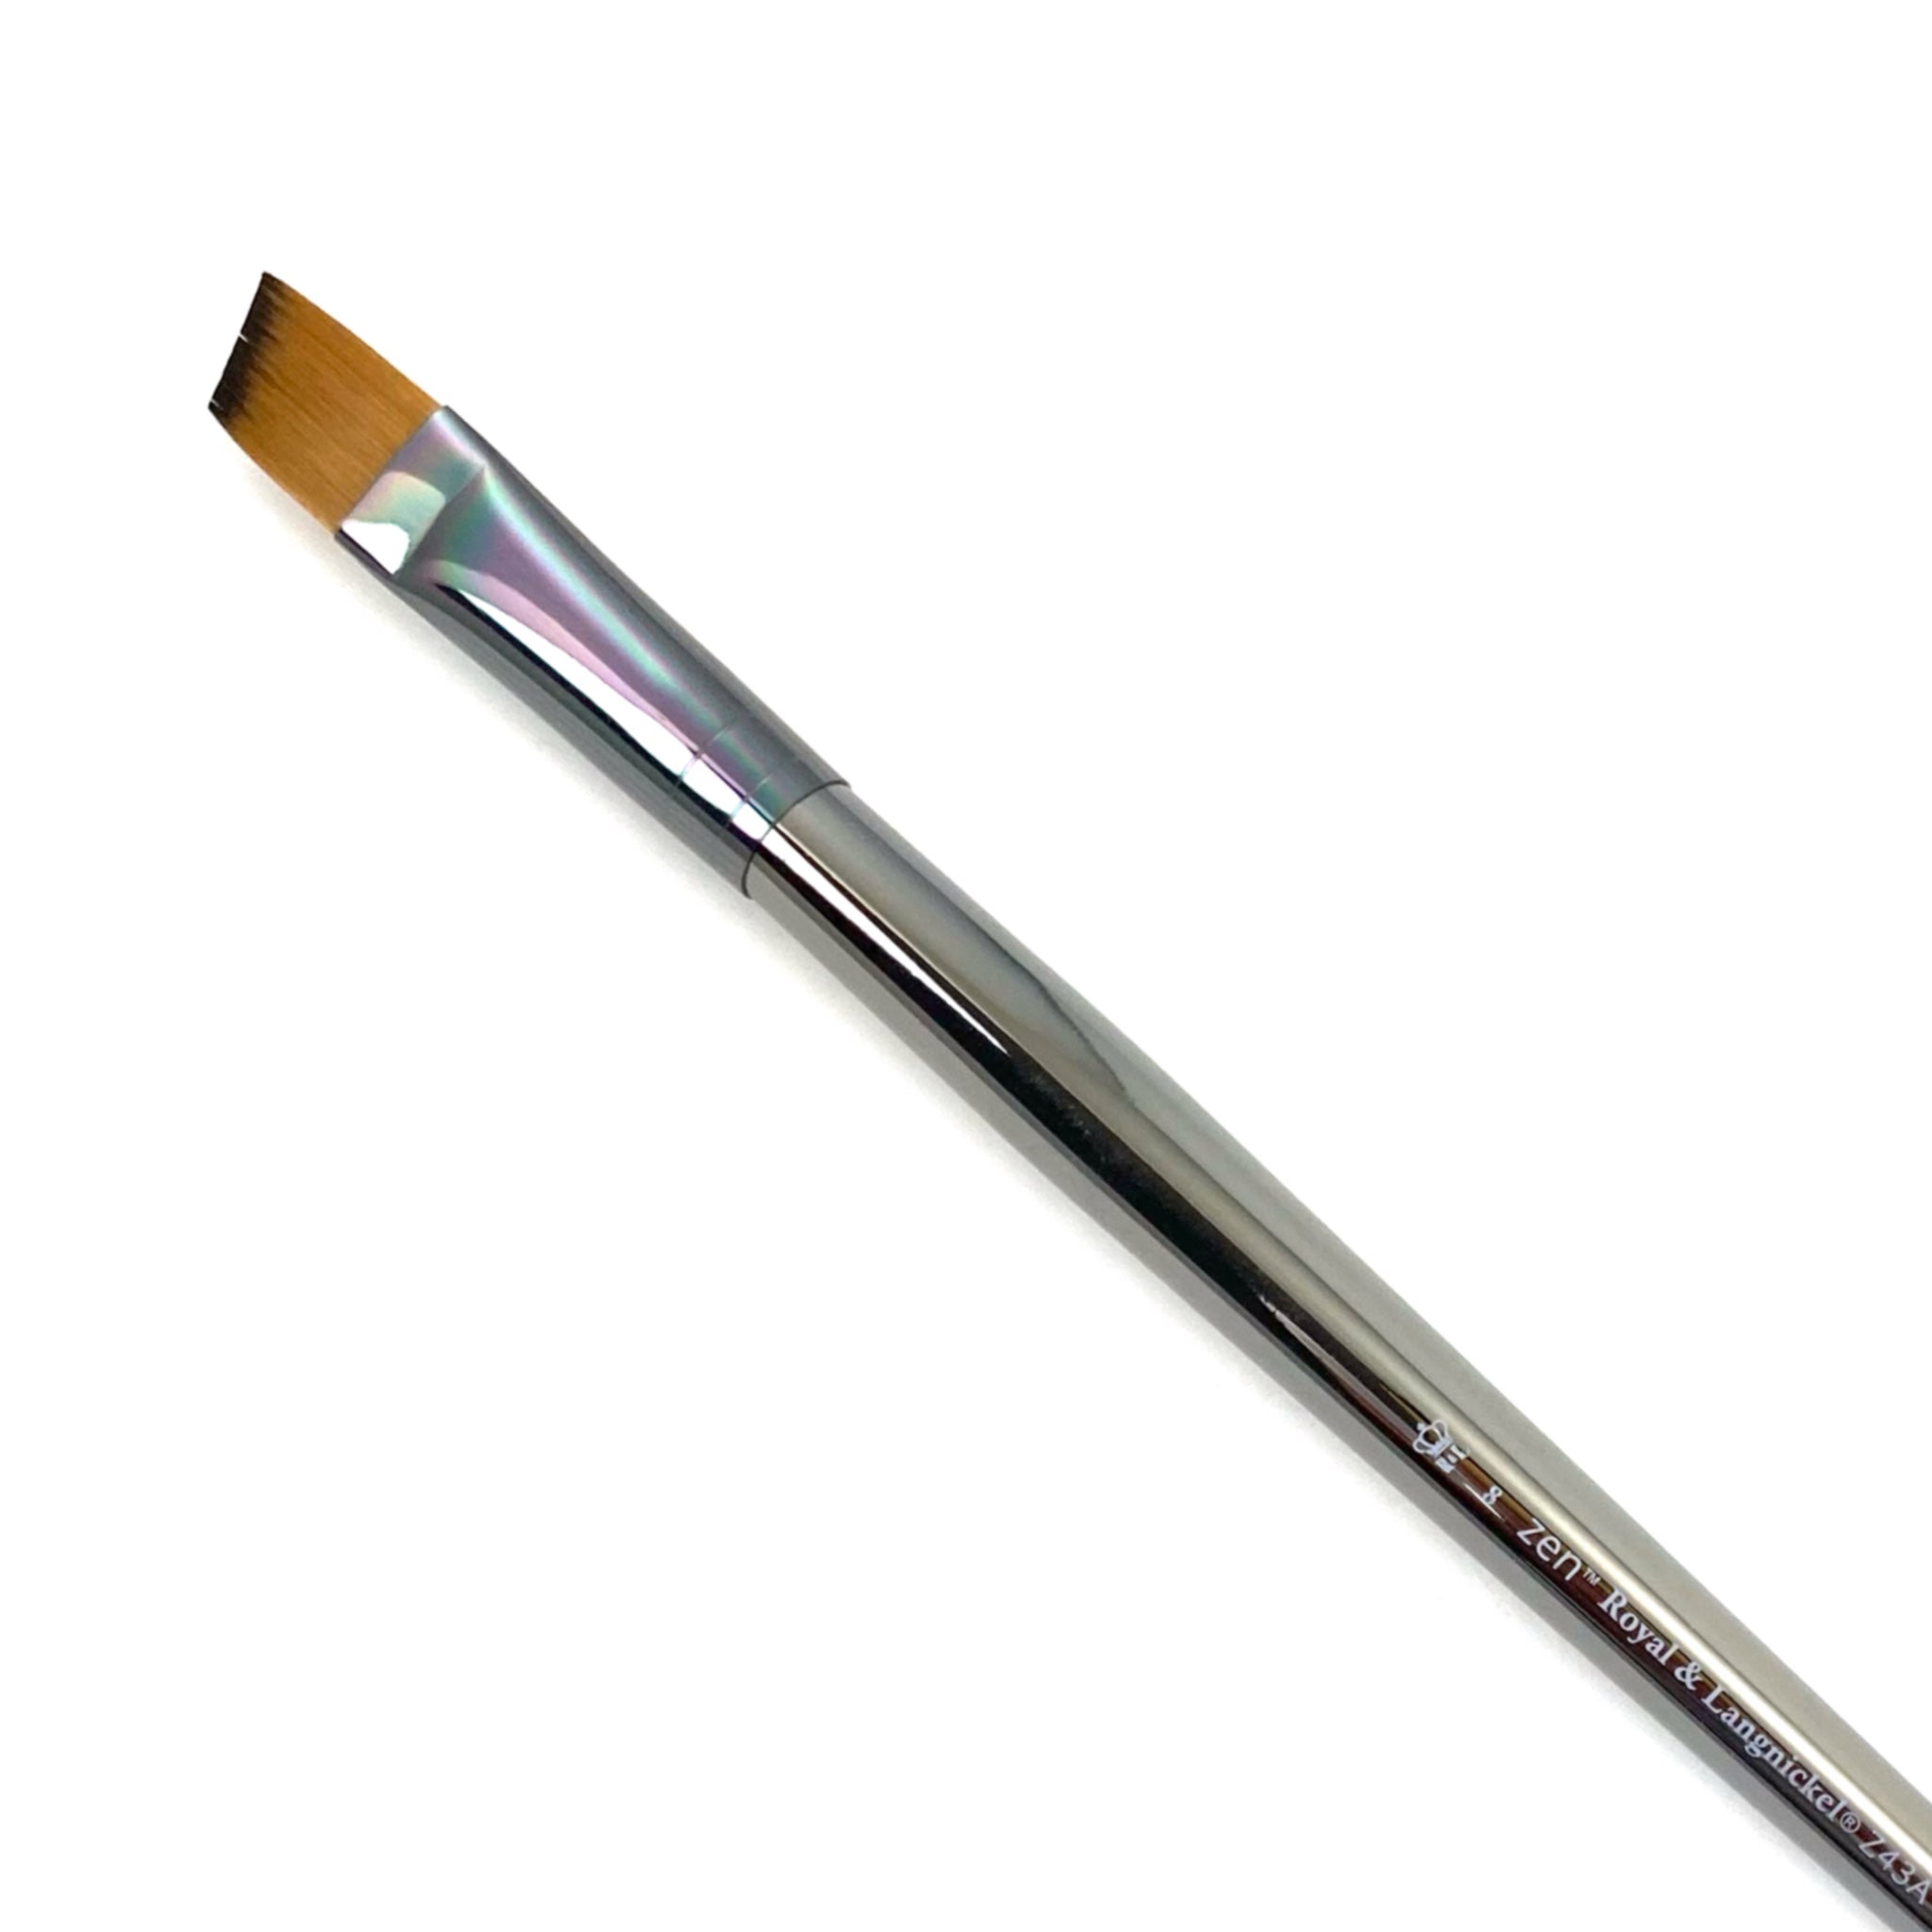 Royal & Langnickle Zen Long Handle Brushes - 43 Series - Angular / 8 by Royal & Langnickle - K. A. Artist Shop